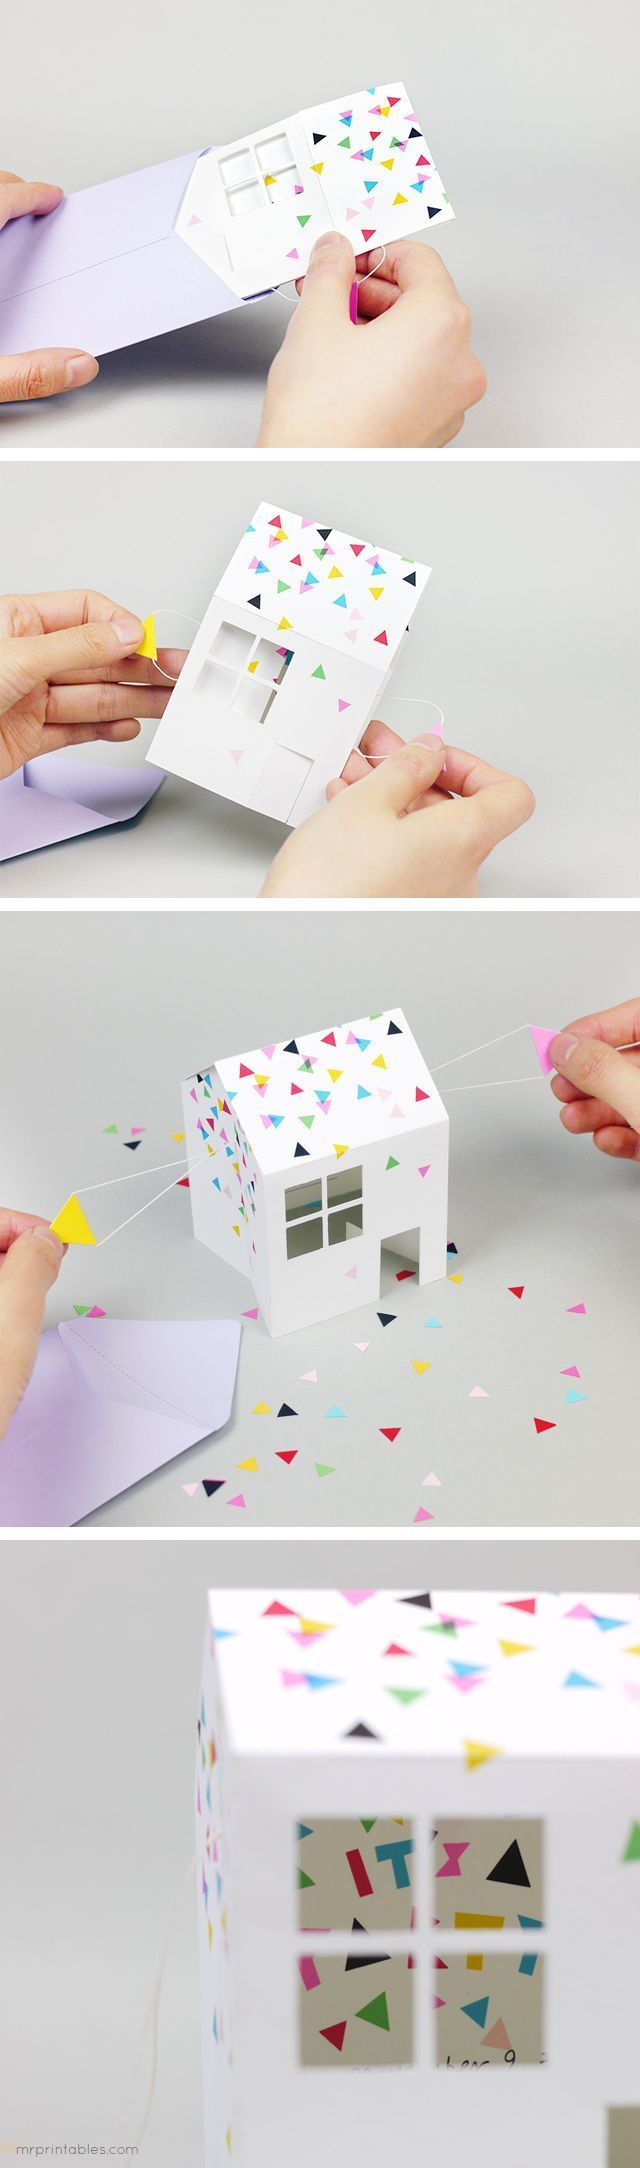 Pop-Up House Party Invitation - Mr Printables